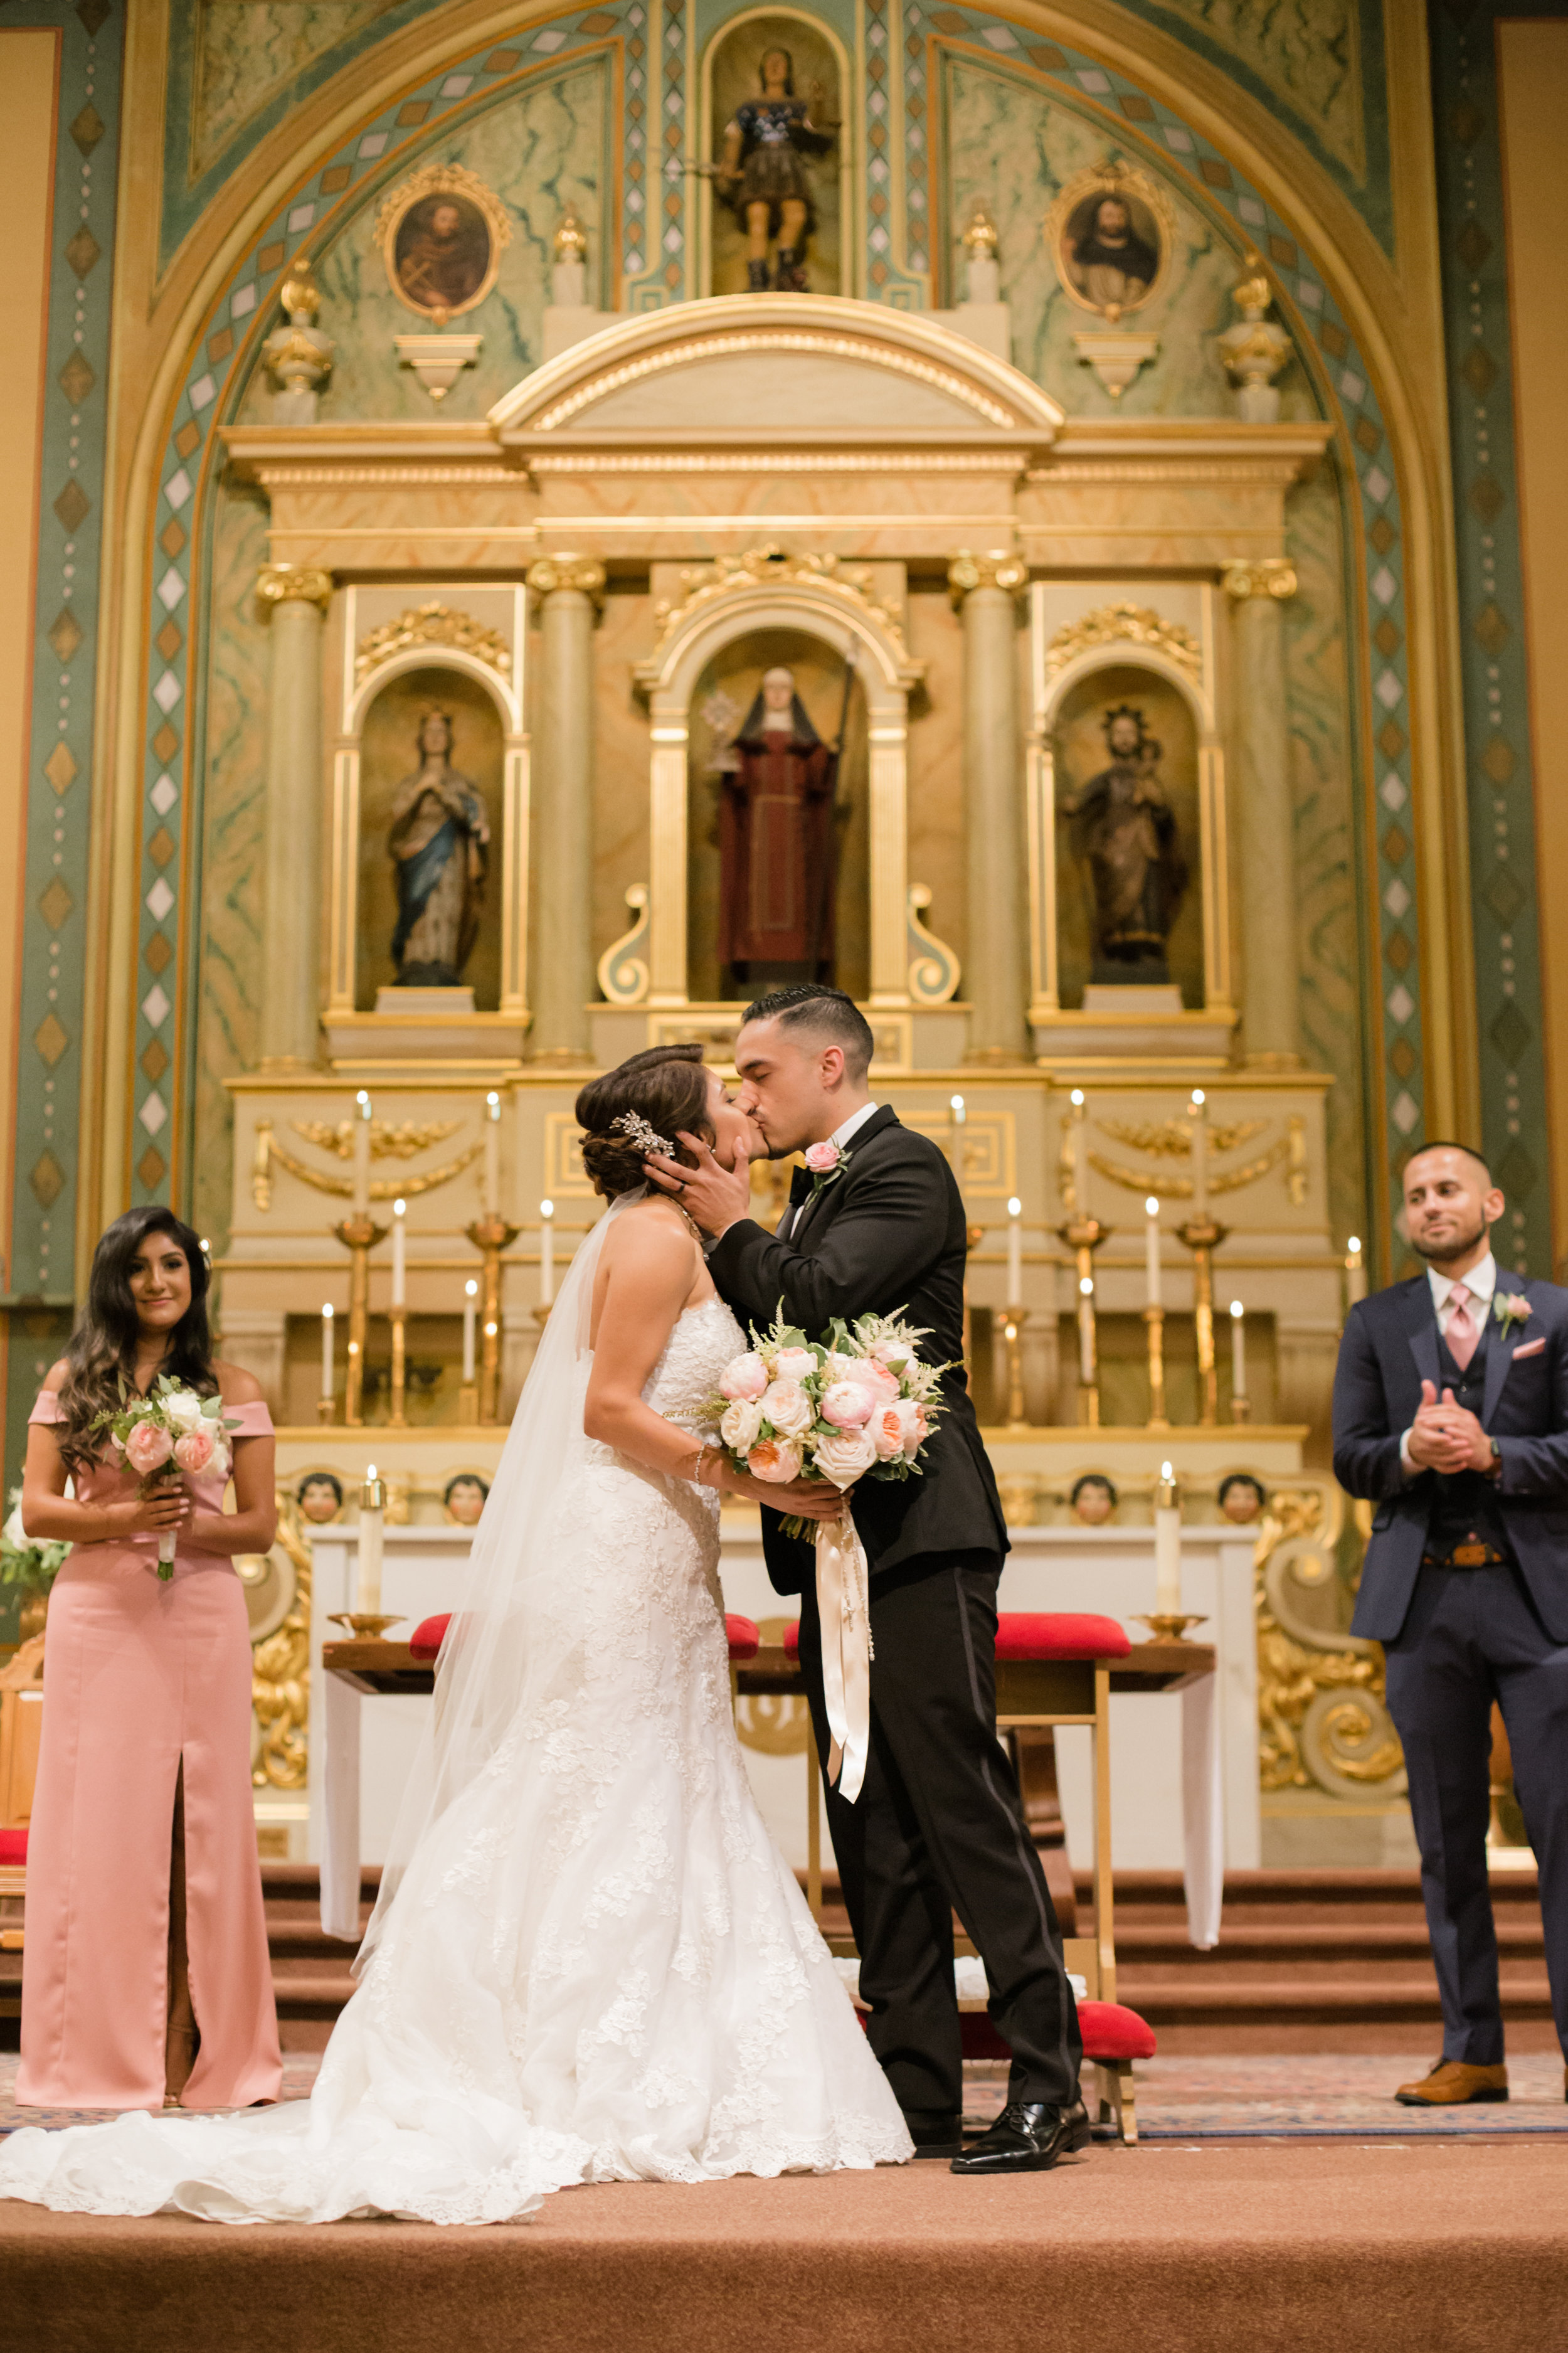 The first kiss during a wedding at Mission Santa Clara de Asís.